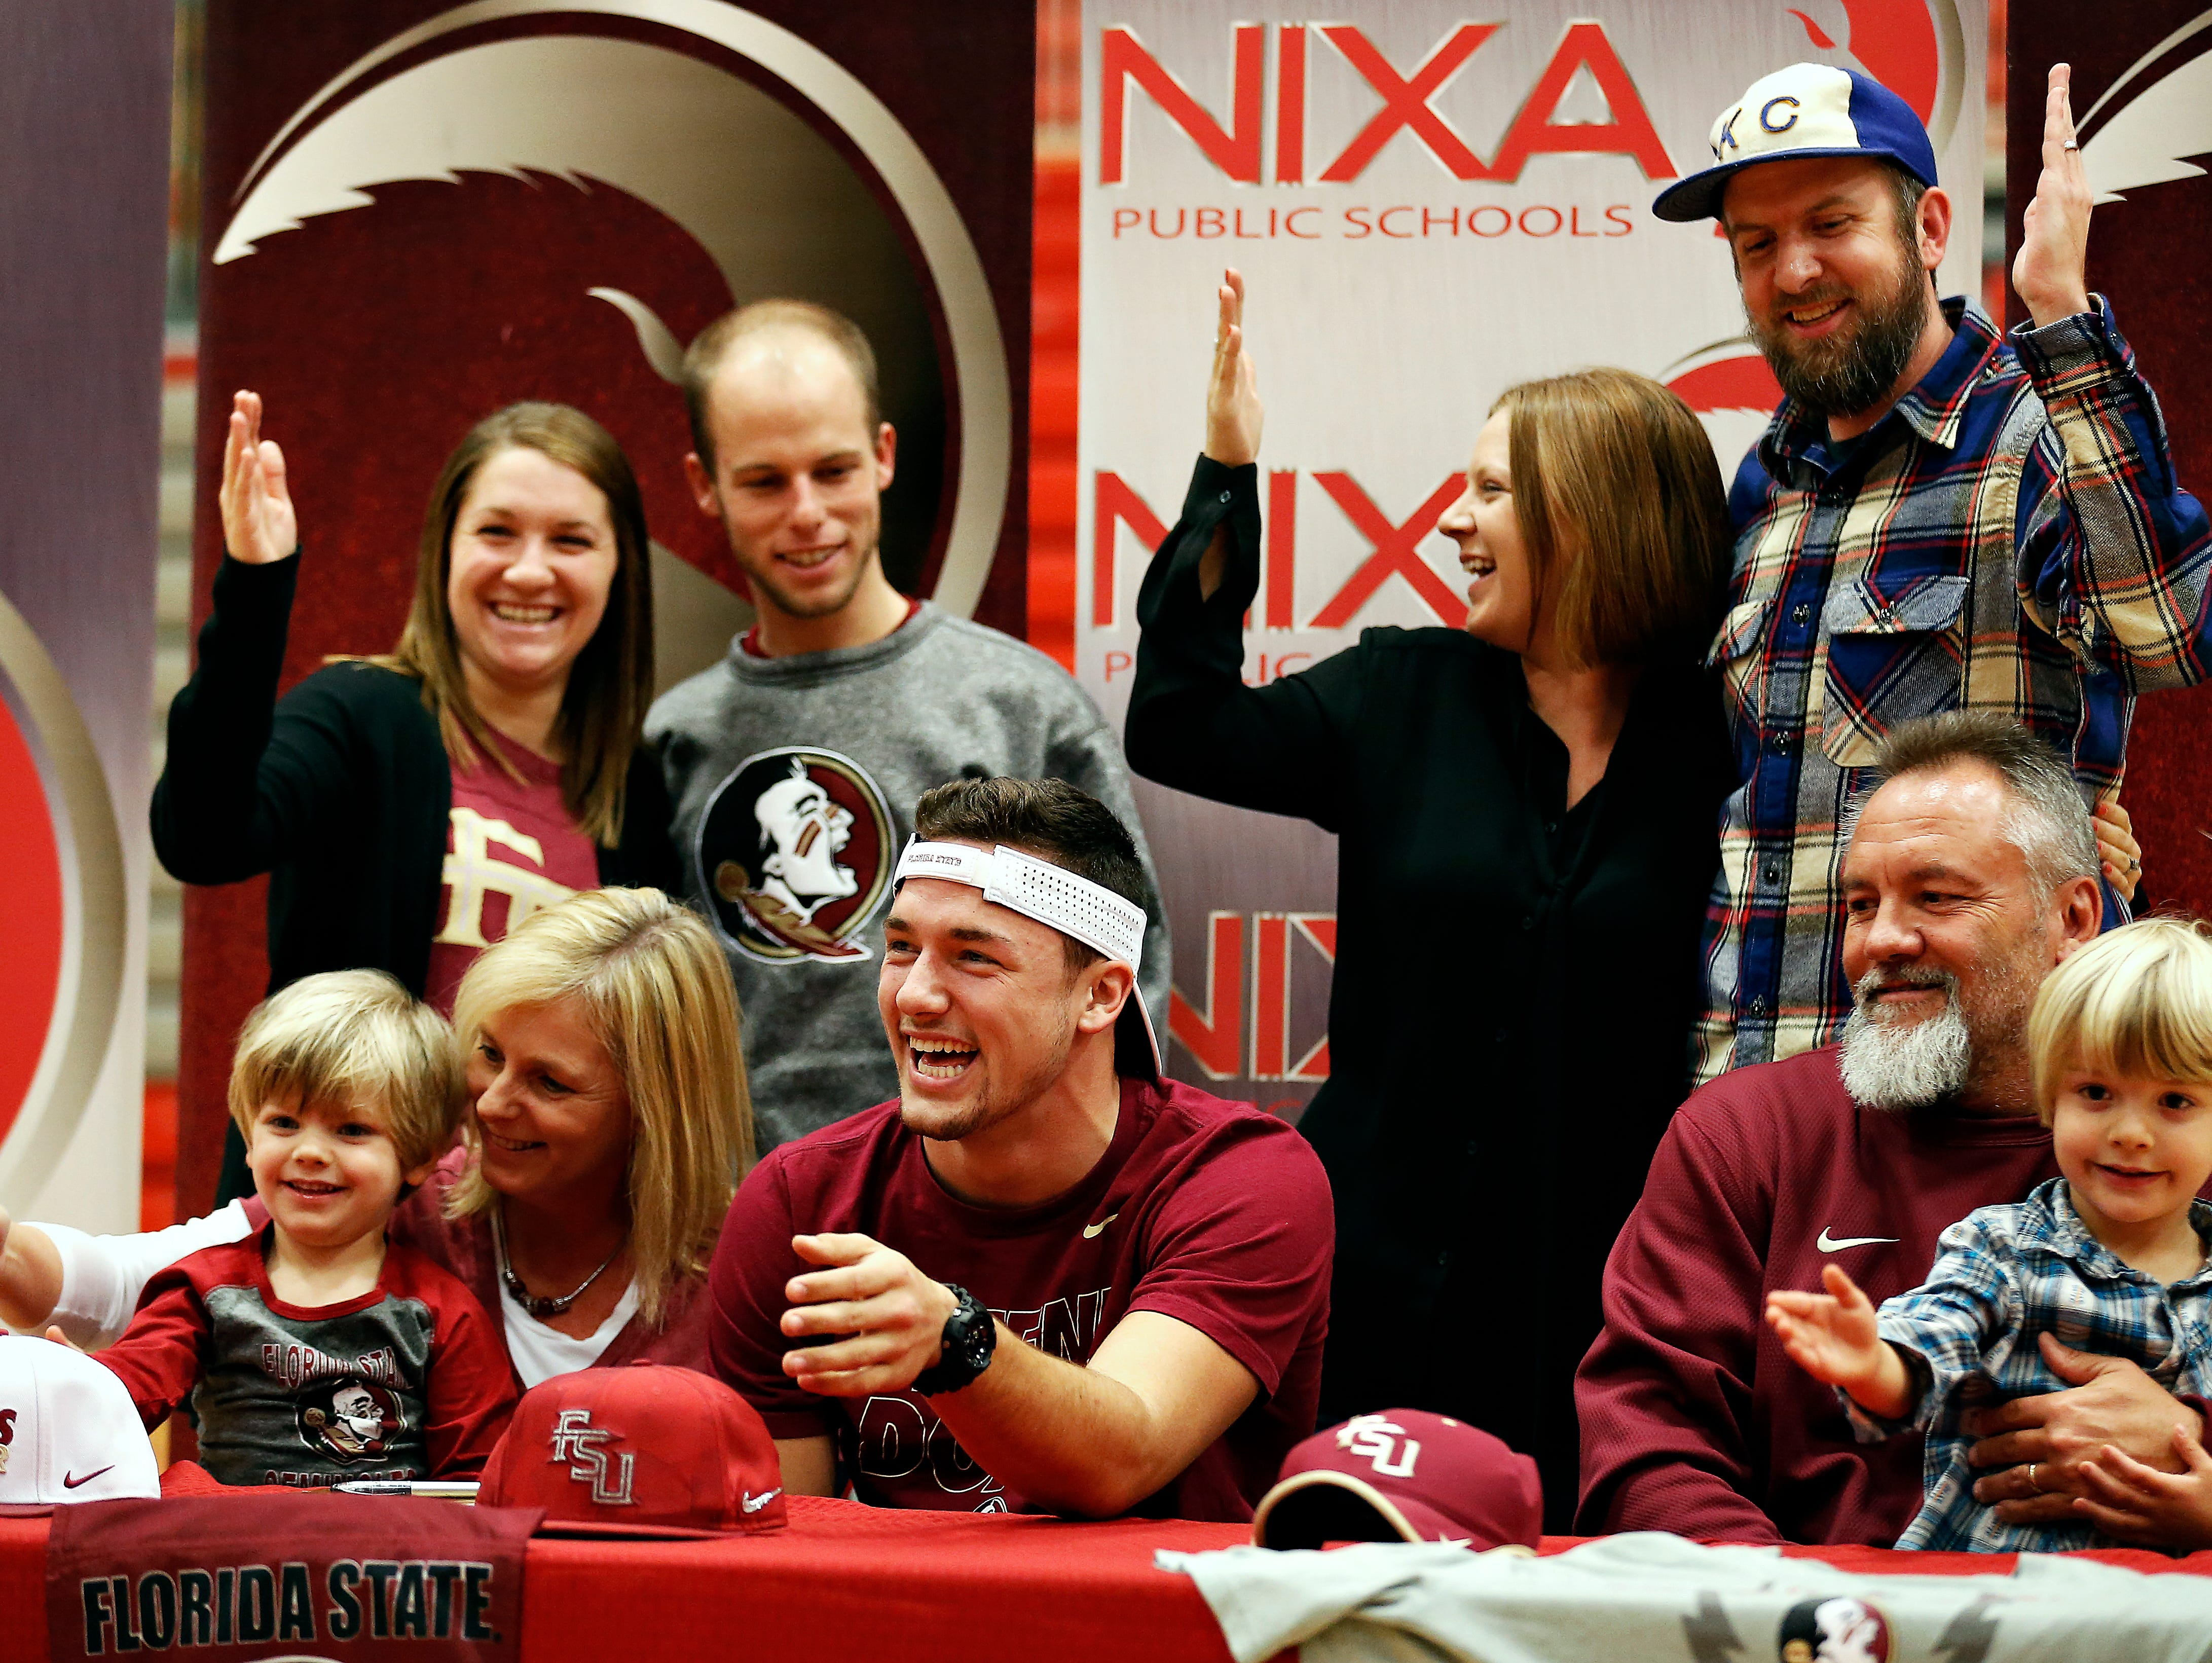 """Nixa High School senior Logan Tyler and his family do the """"Tomahawk Chop"""" after Tyler signed a national letter of intent to play football at Florida State University at the Nixa High School gym in Nixa, Mo. on Feb. 3, 2016."""